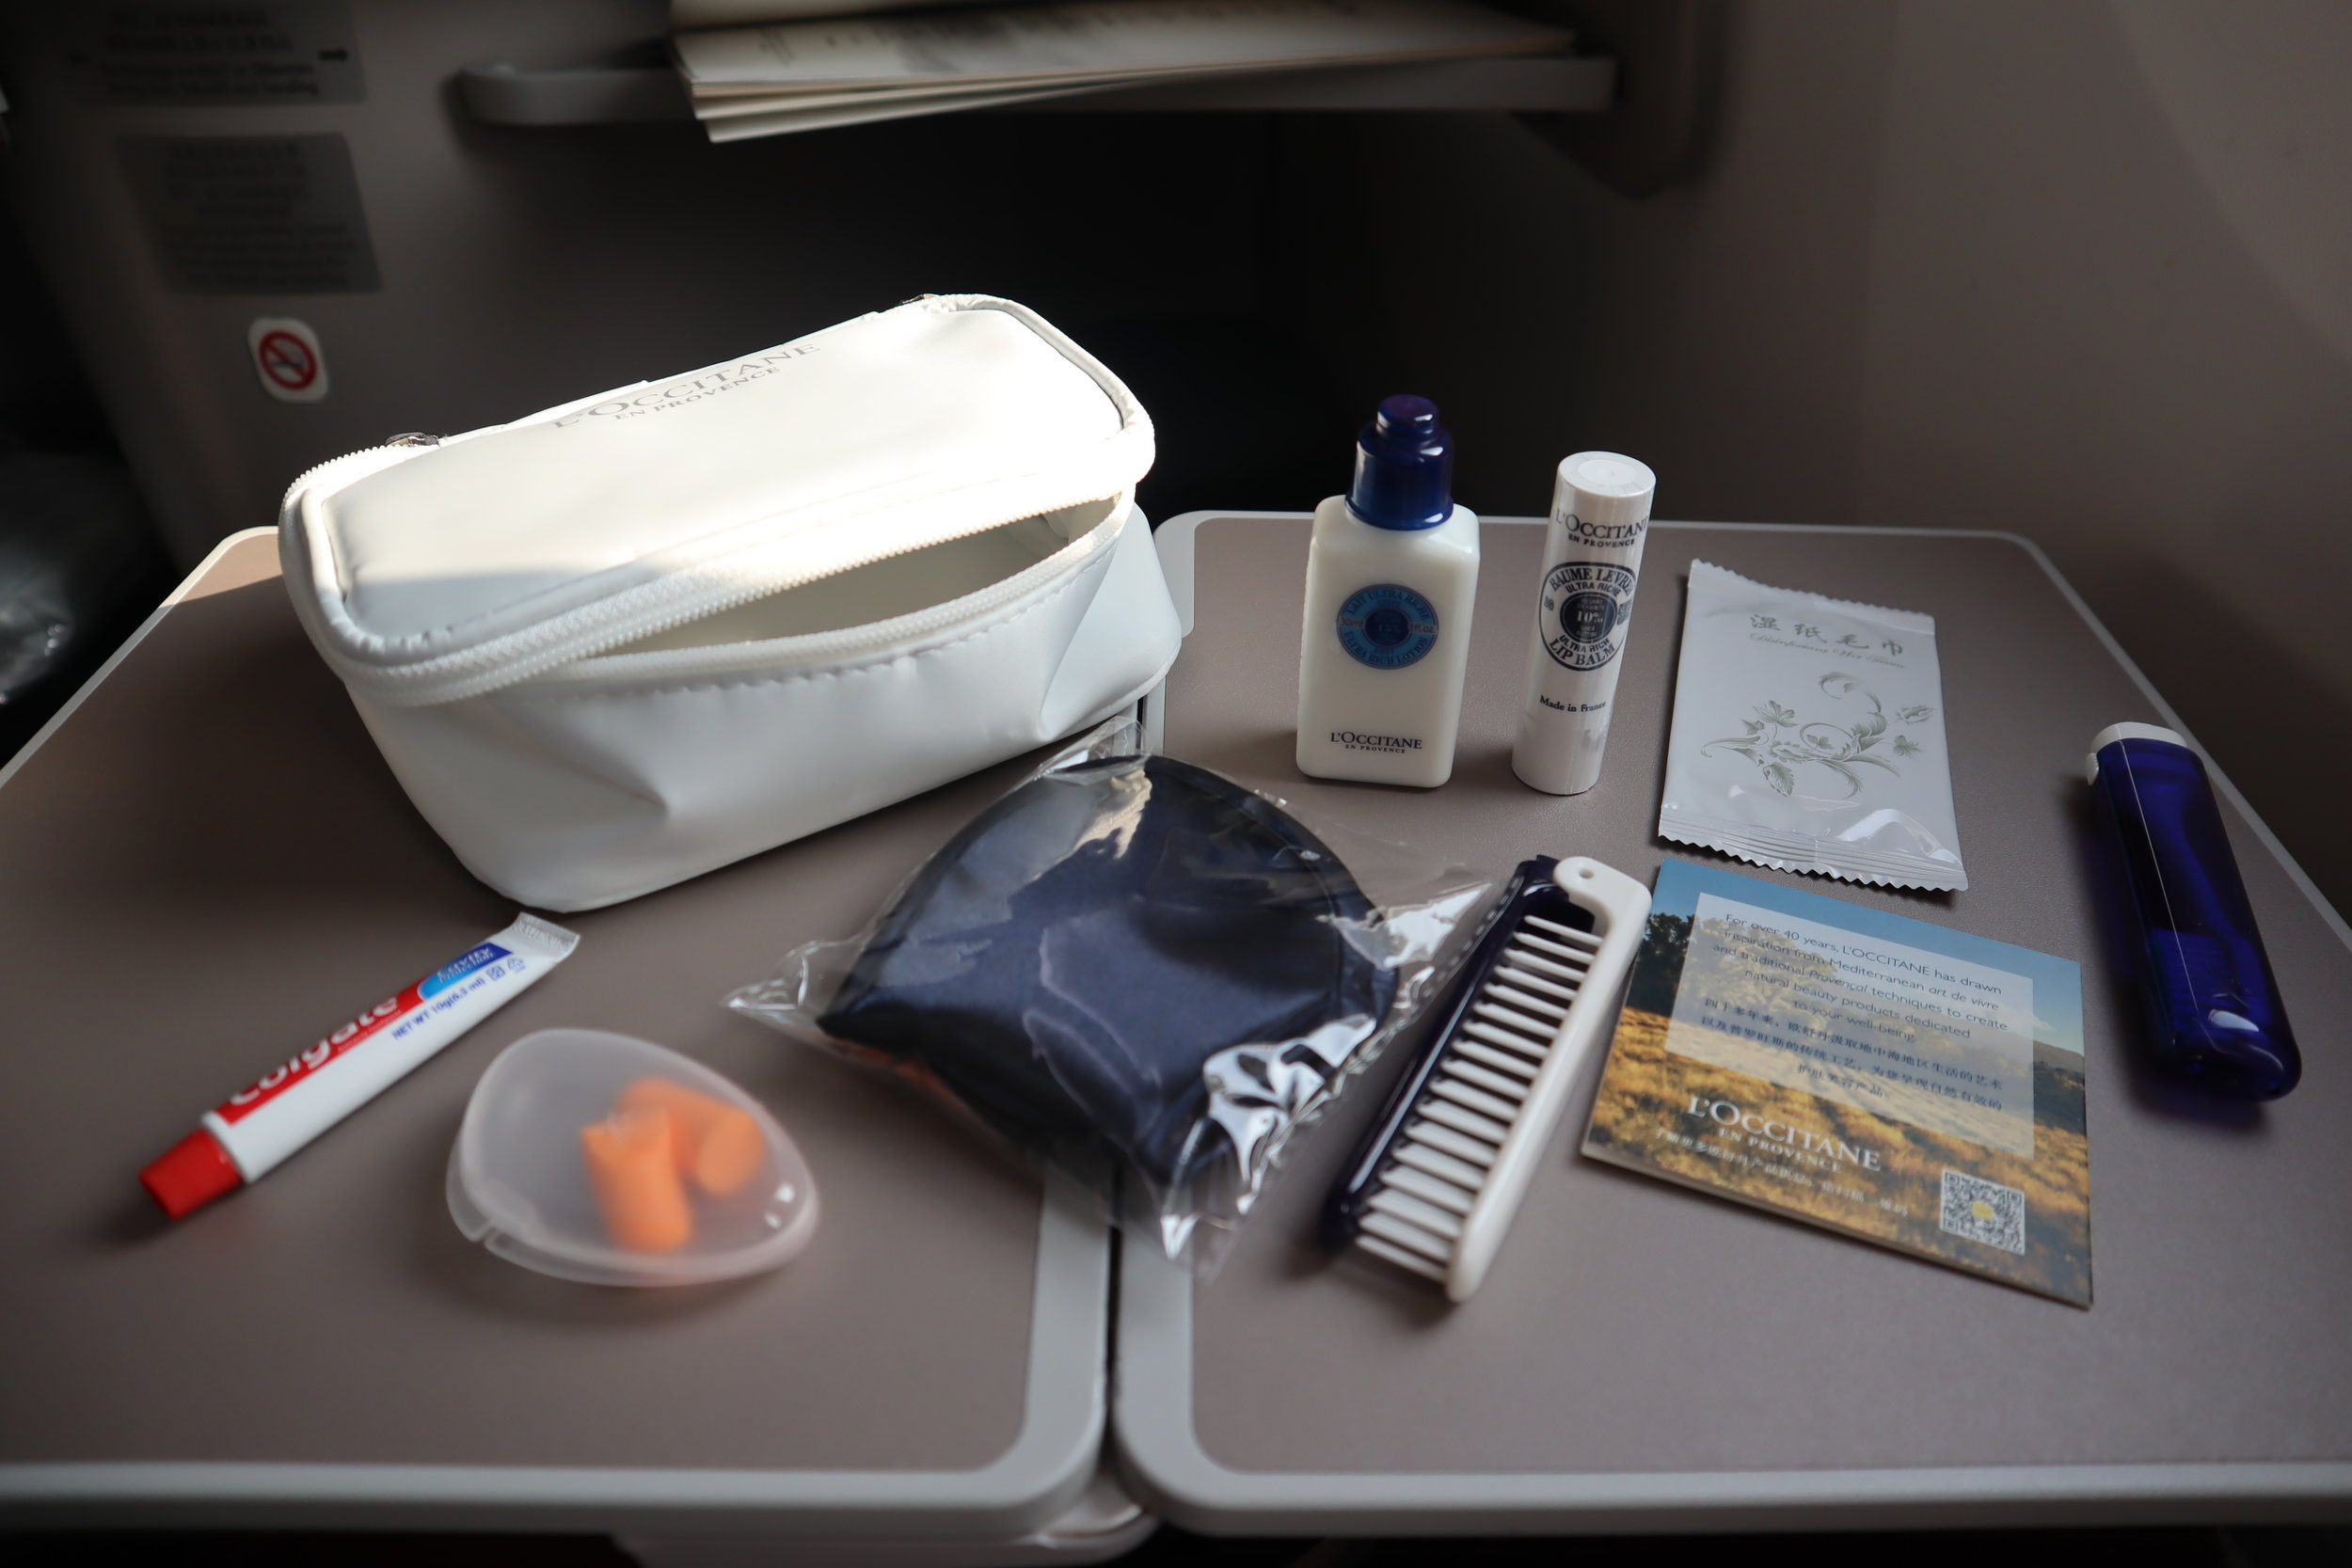 Air China business class – Amenity kit contents